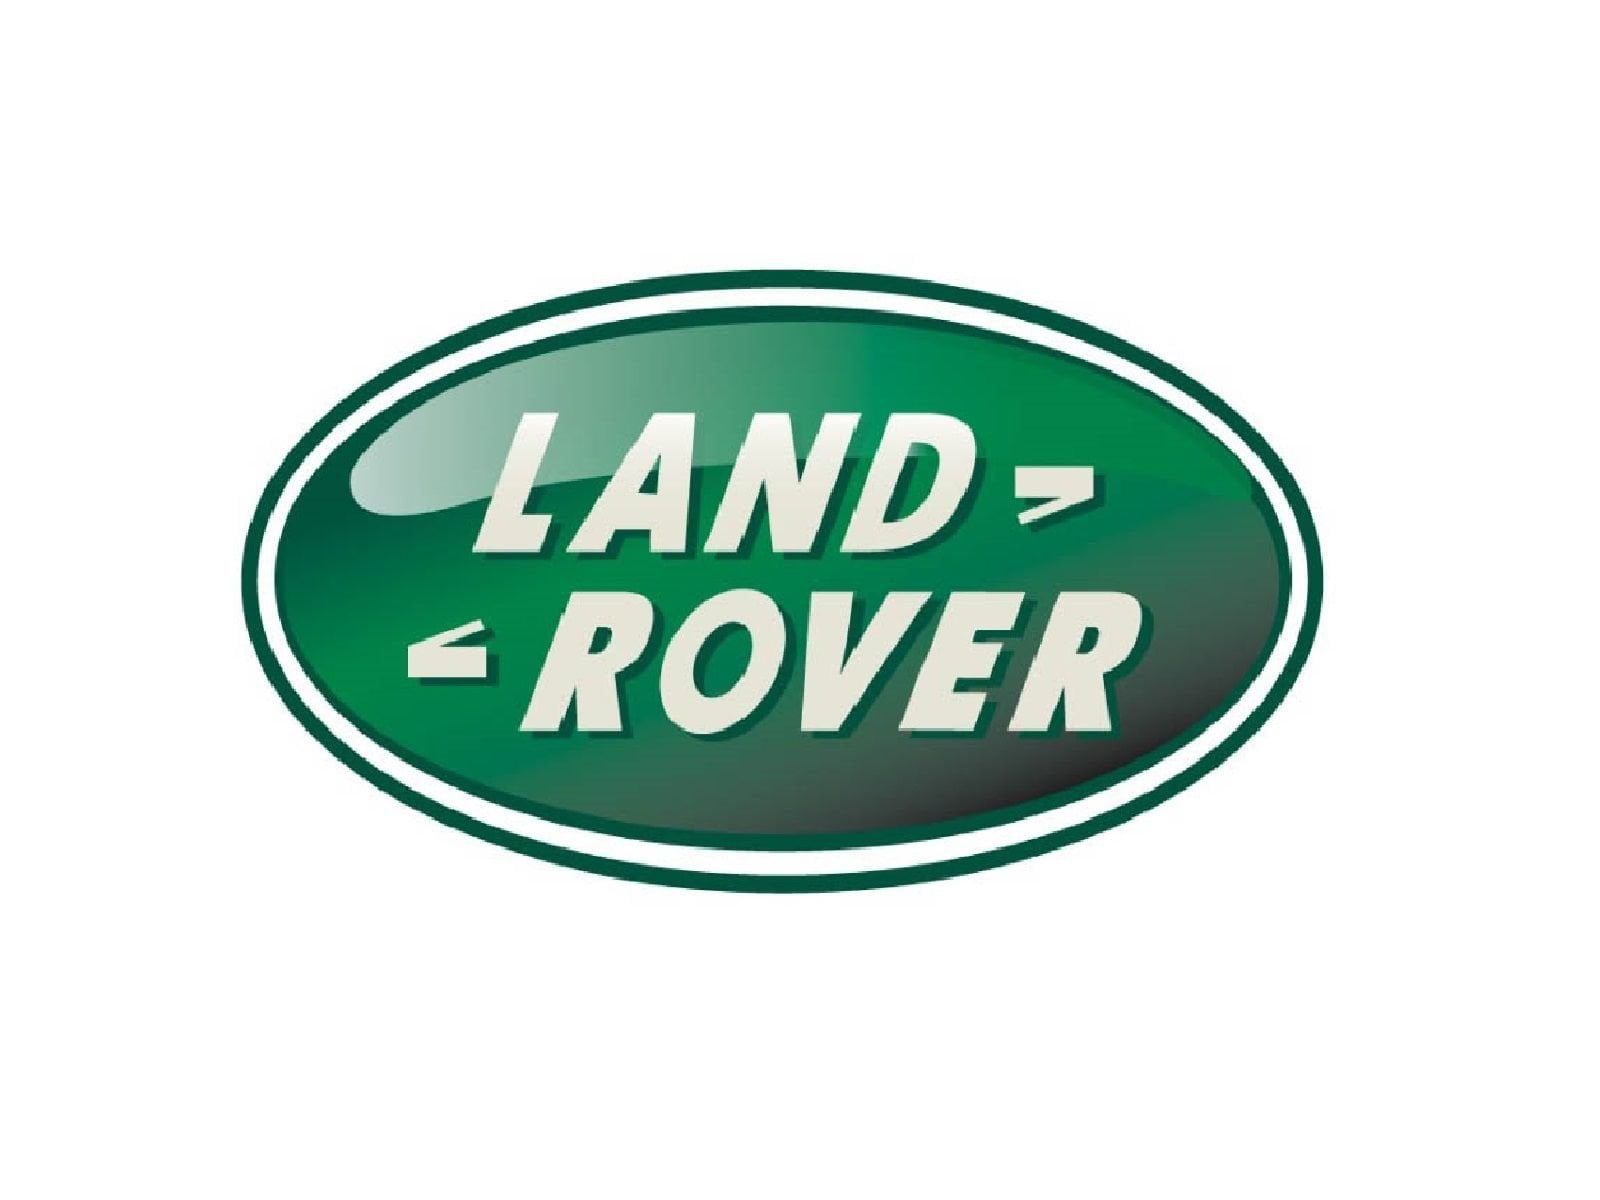 Land Rover global performance